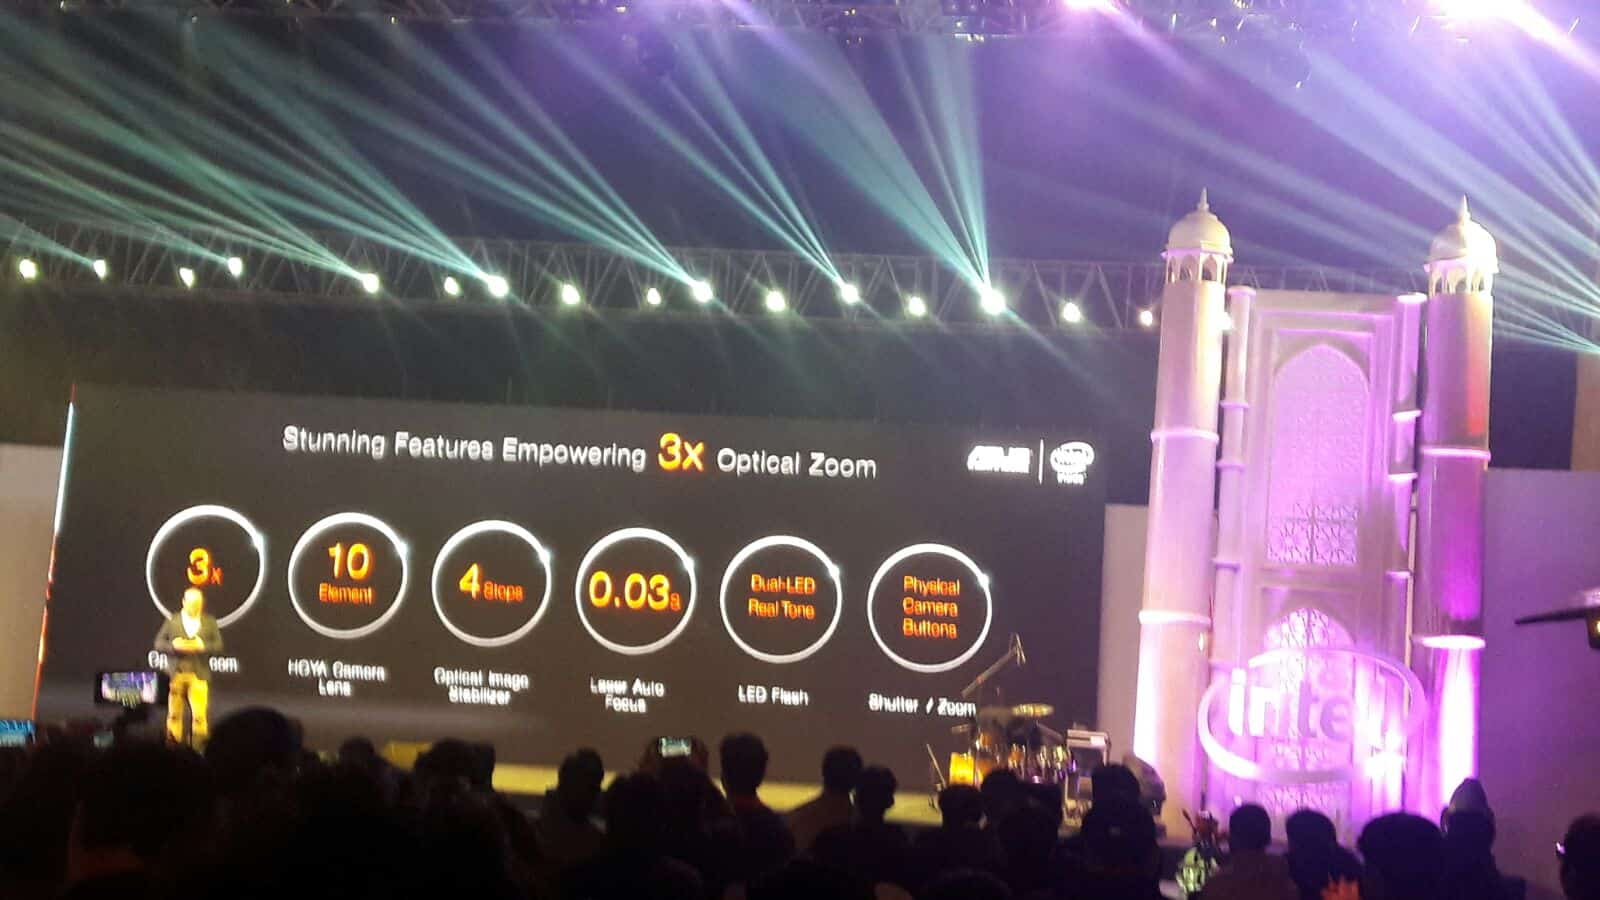 Asus ZenFone Zoom unveiled: This is the World's thinnest 3X Optical-Zoom smartphone - 8